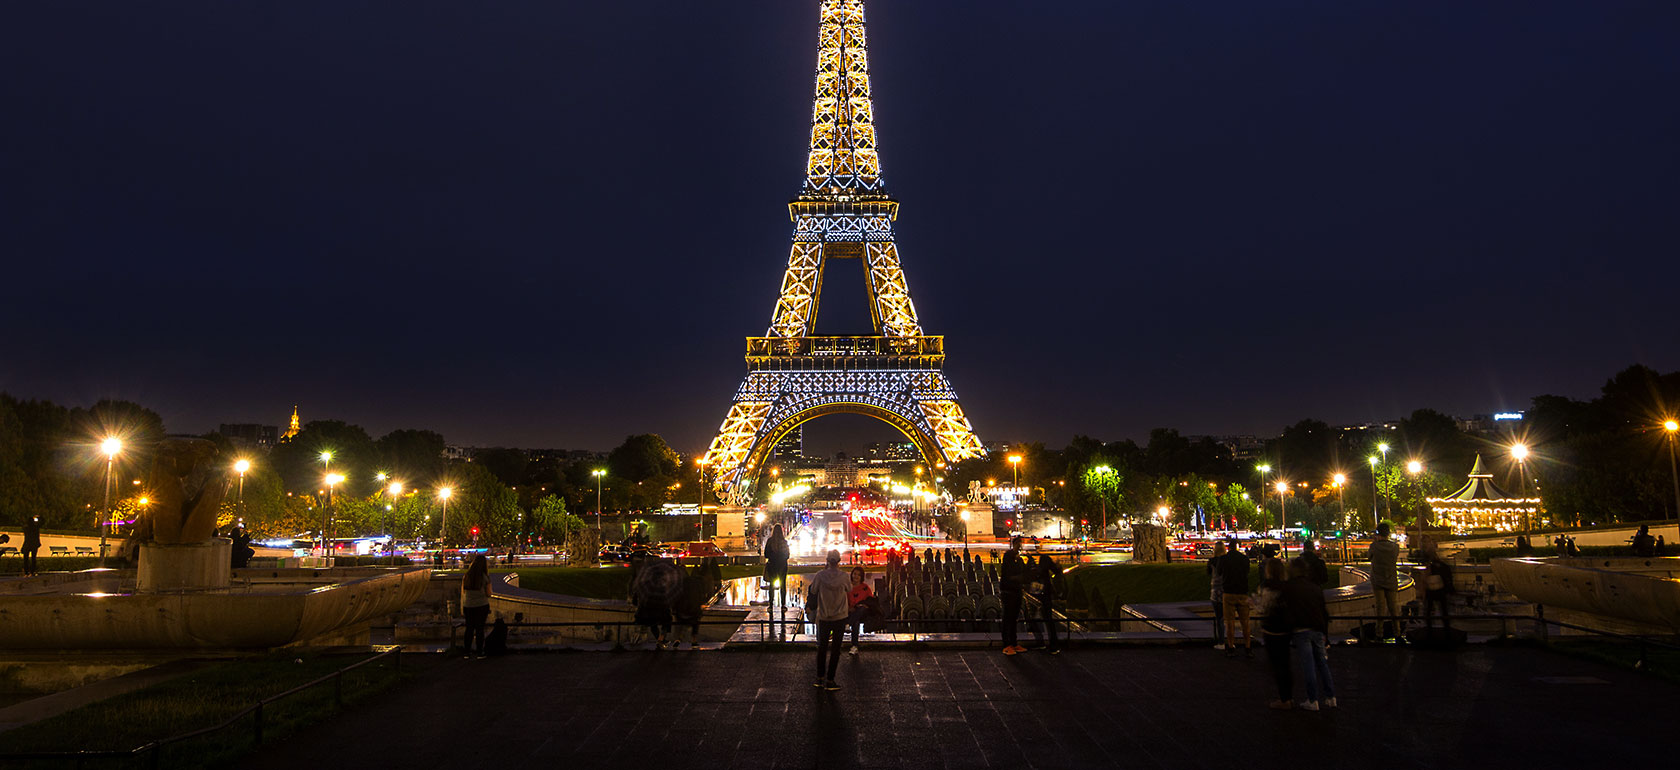 Bus Tours Of Paris At Night